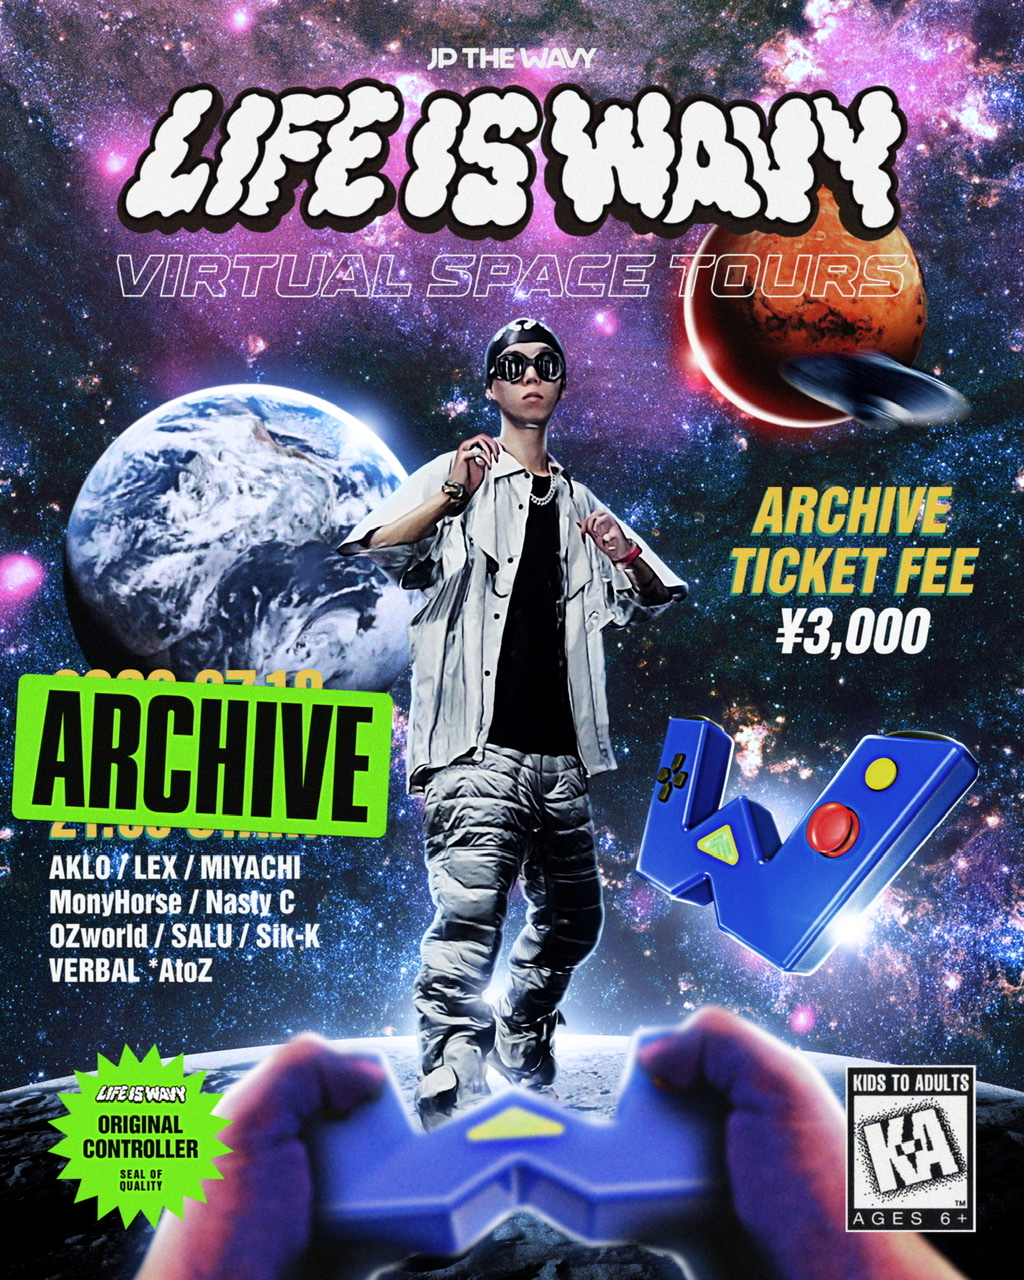 LIFE IS WAVY VIRTUAL SPACE TOURS [Archive] | JP THE WAVY